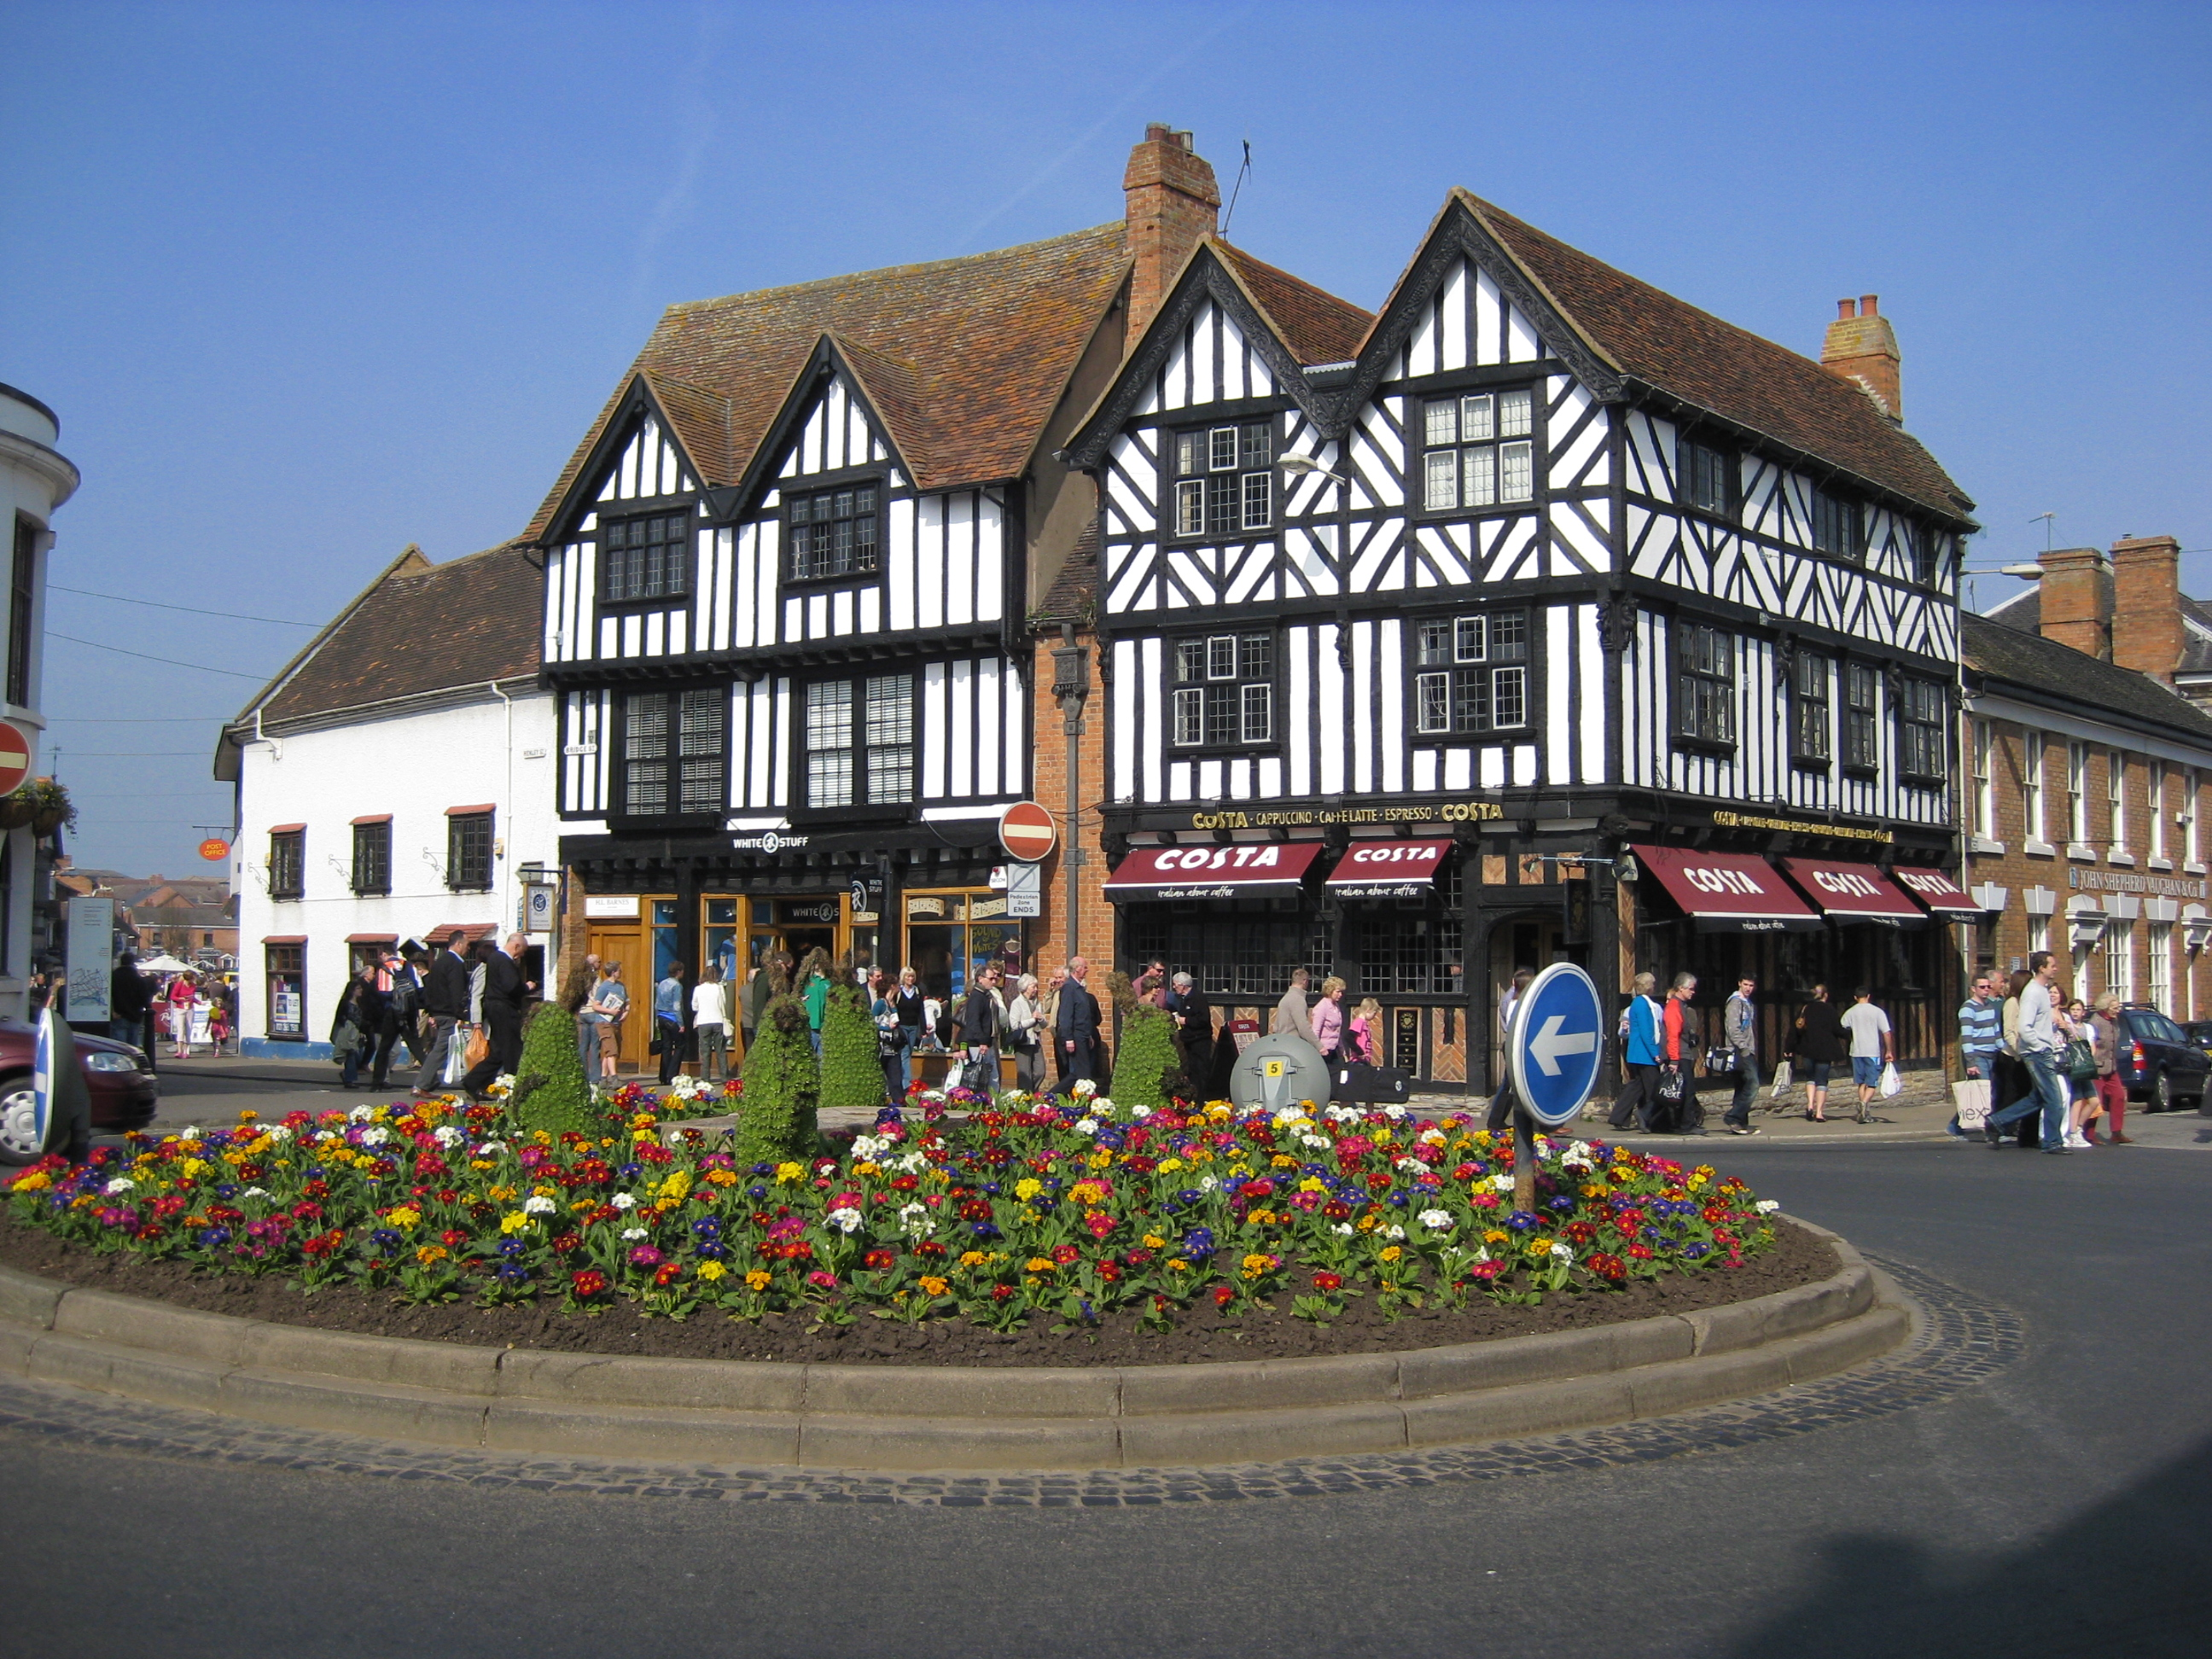 Stratford Upon Avon United Kingdom  city photos gallery : Description Stratford upon Avon